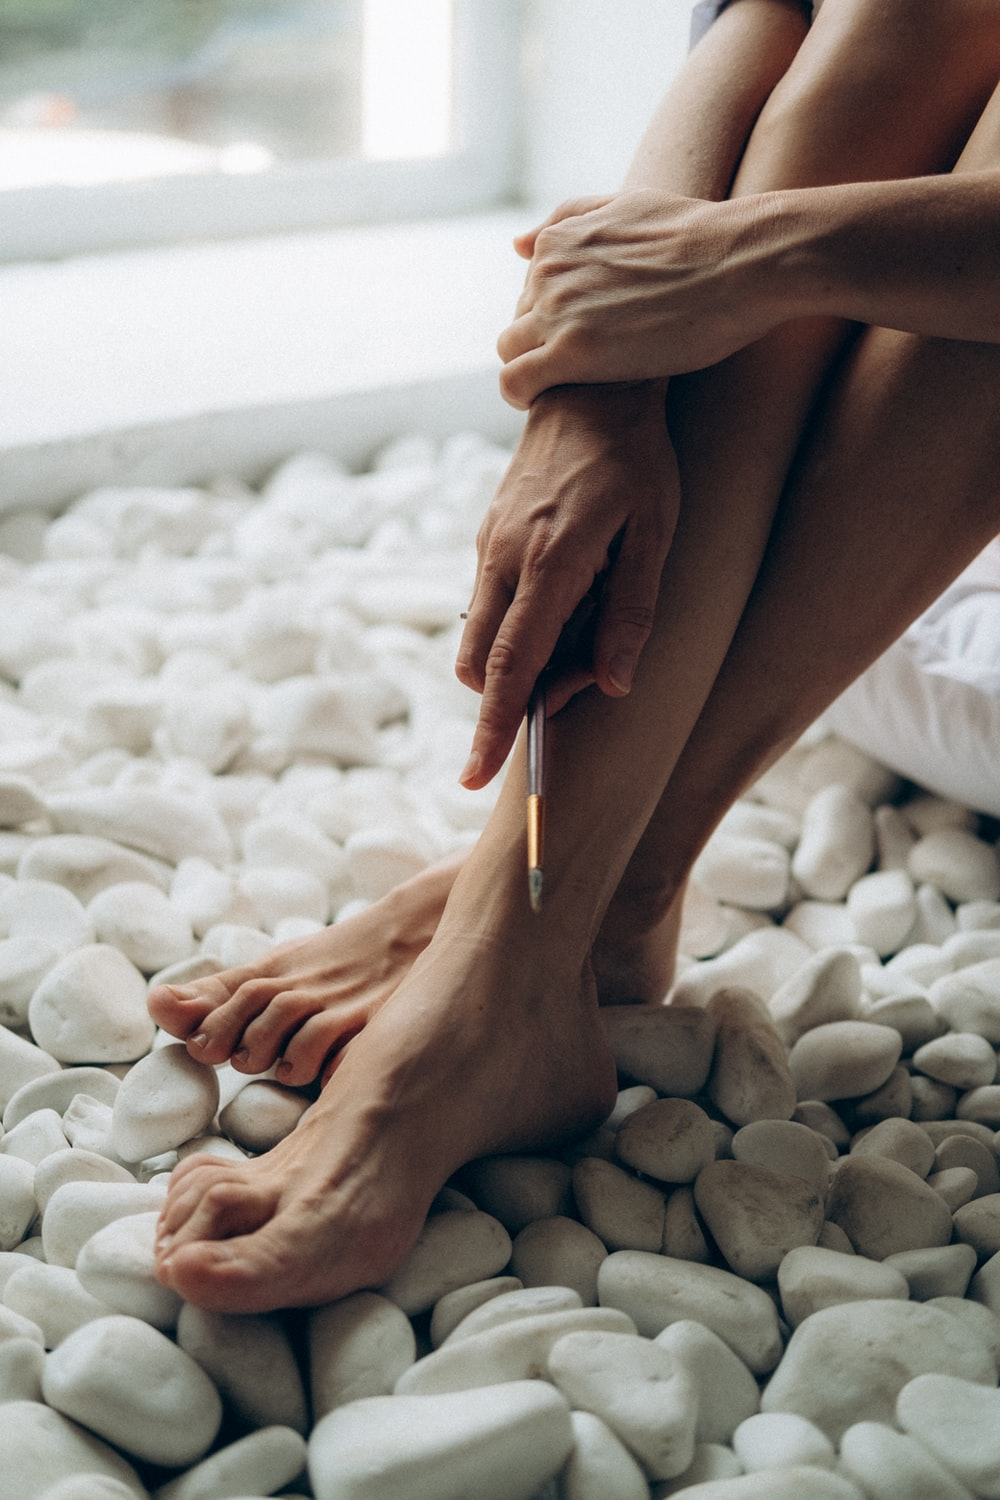 persons feet on white and gray pebbles